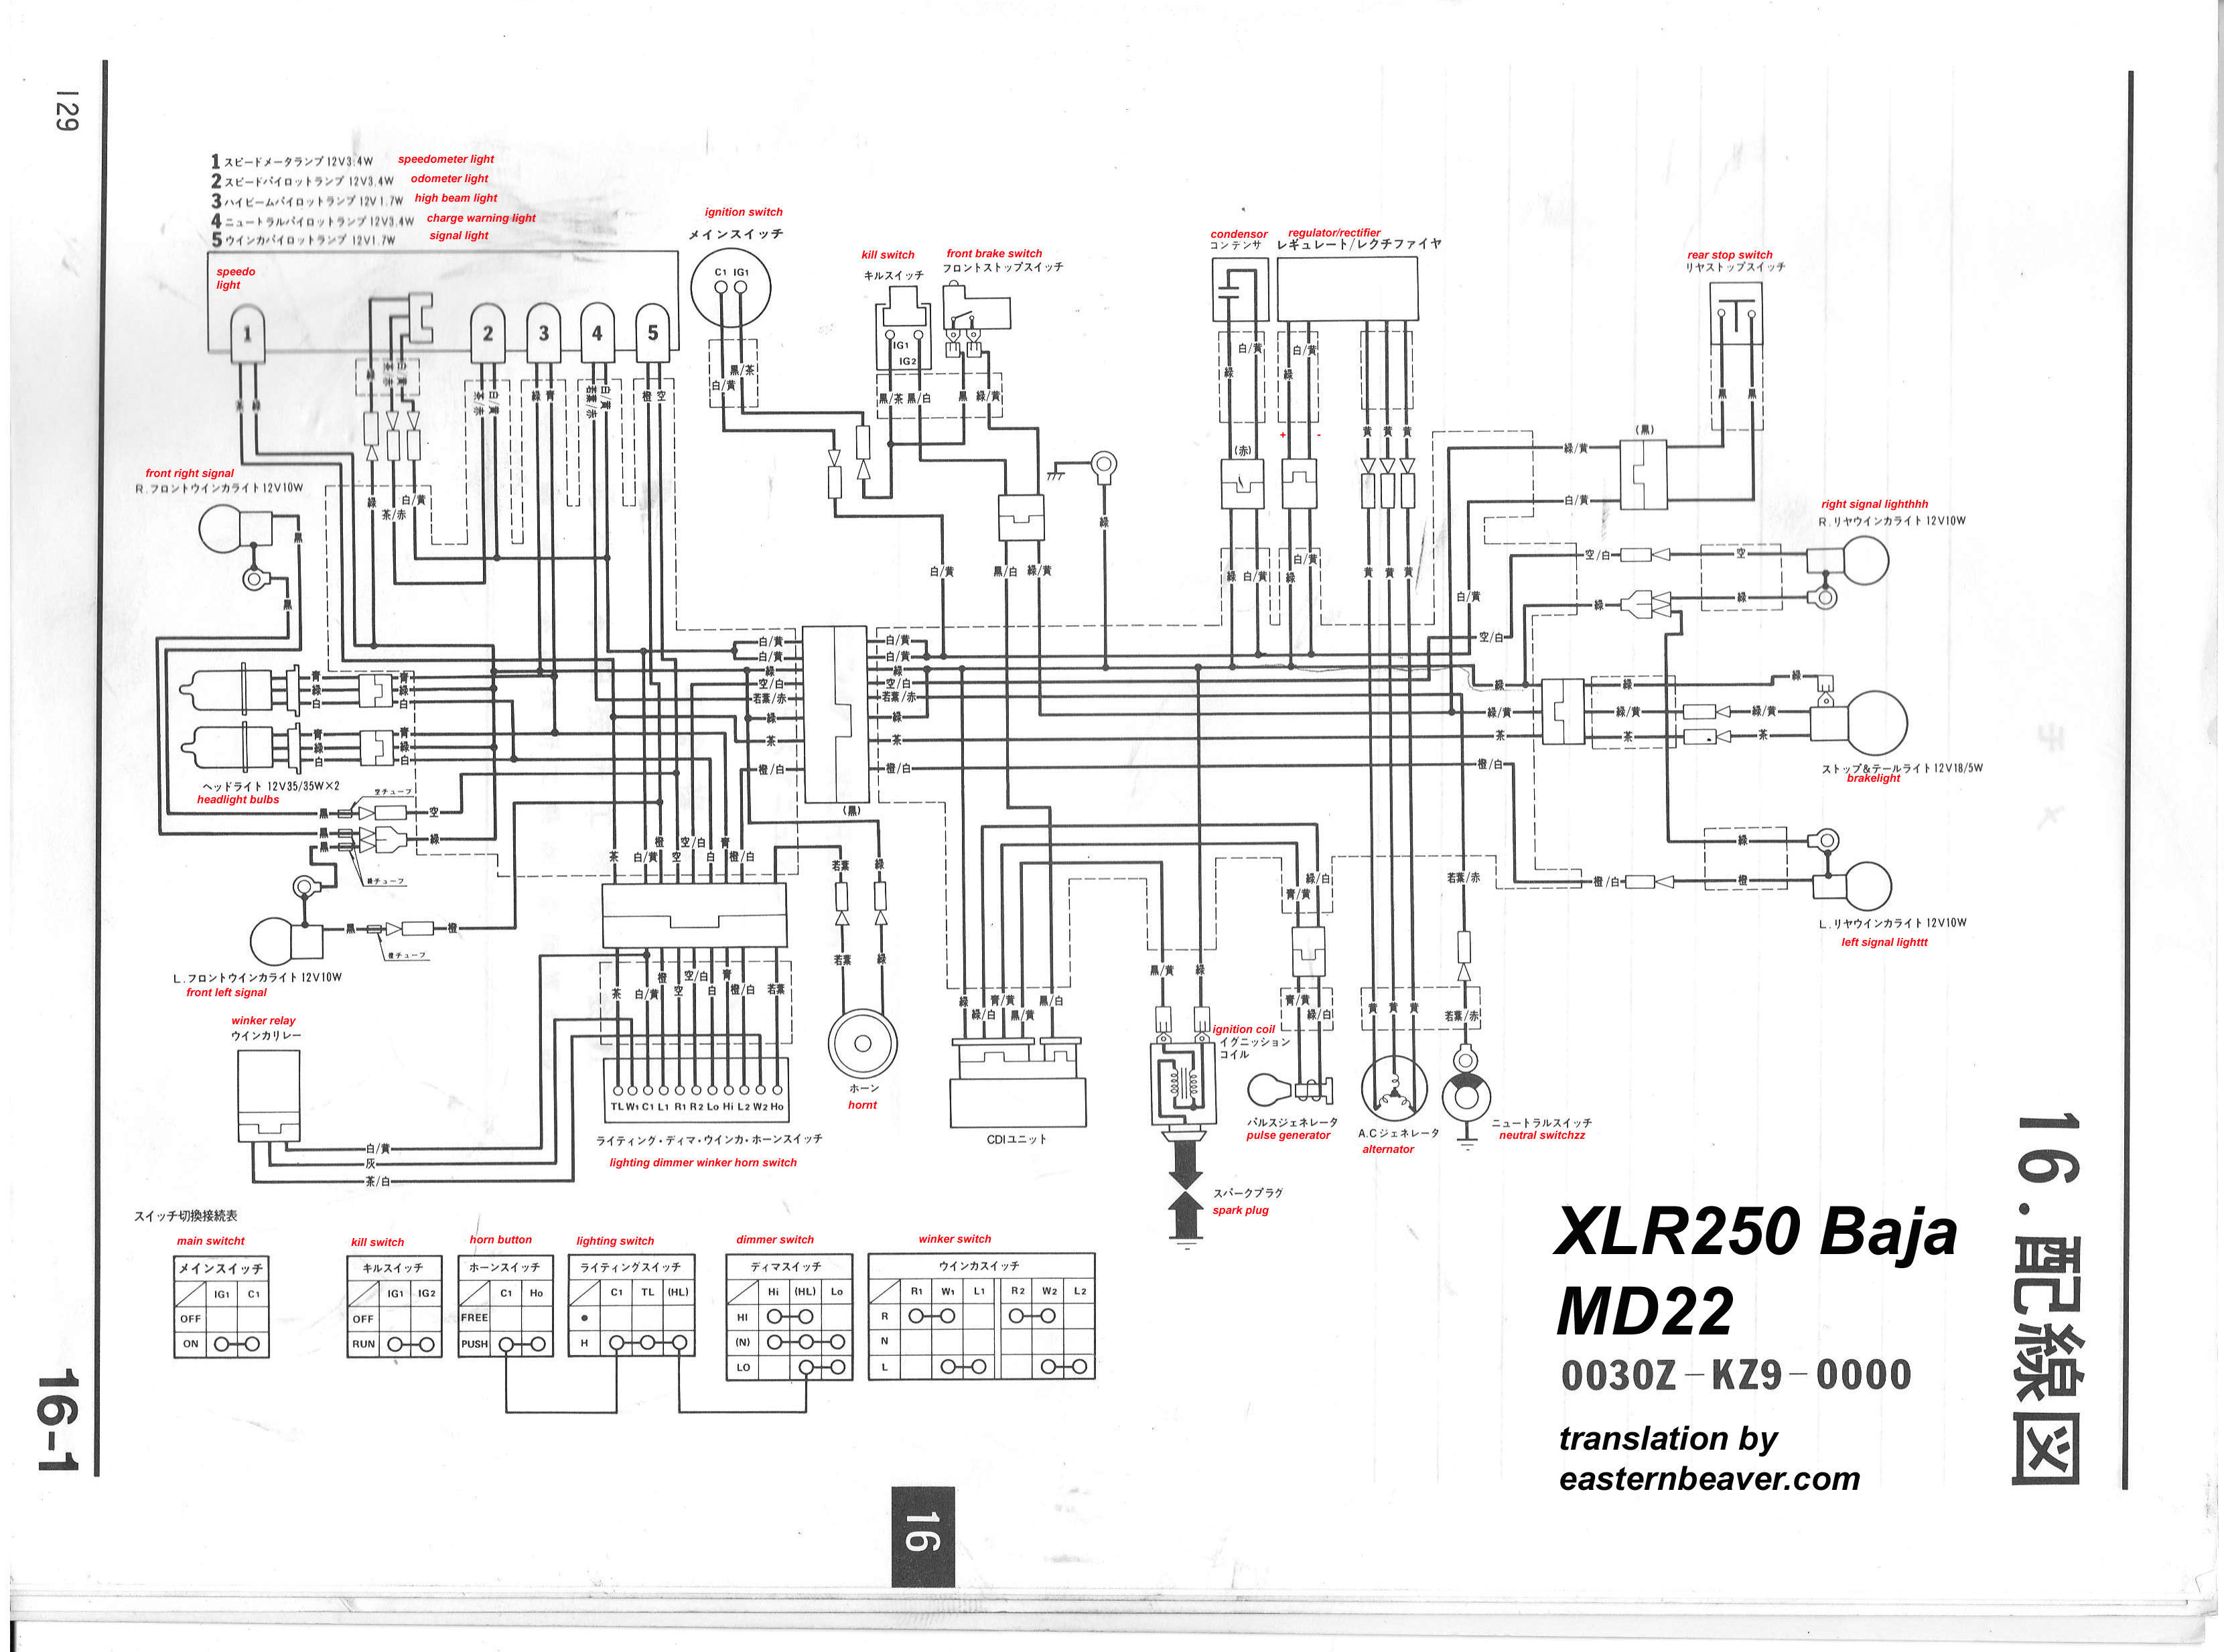 Kdx400 Wiring Diagram. kdx 220 wiring diagram repair